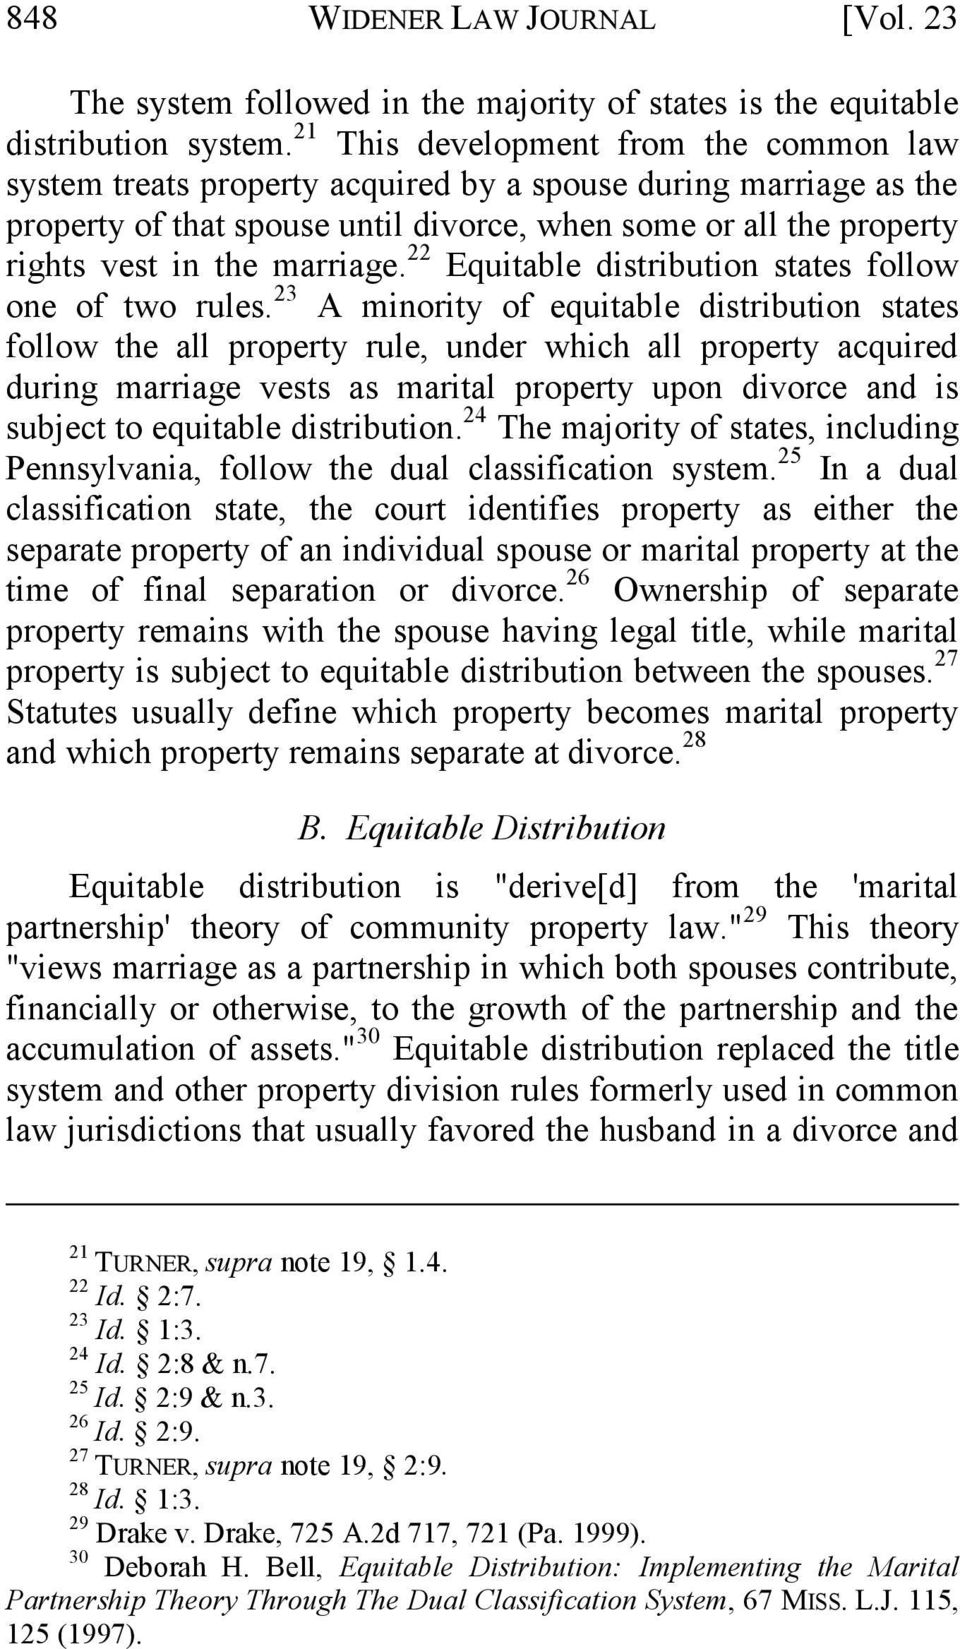 marriage. 22 Equitable distribution states follow one of two rules.